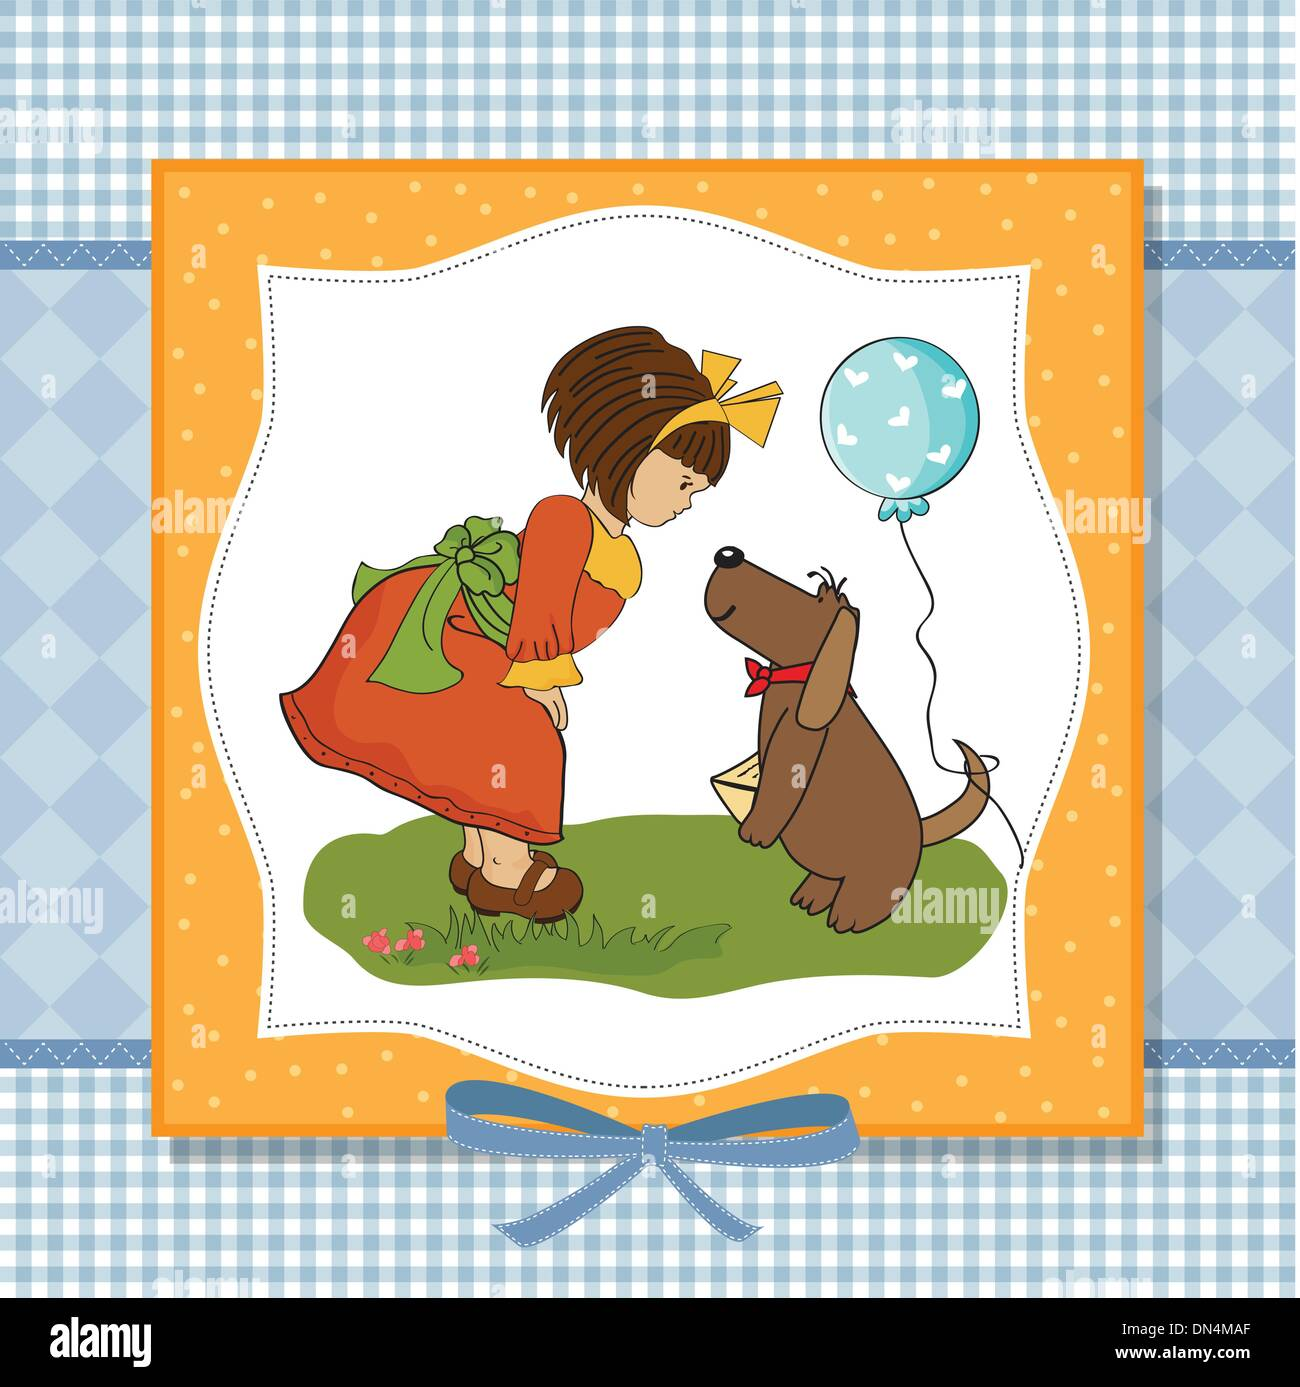 Young Girl And Her Dog In A Wonderful Birthday Greeting Card Stock